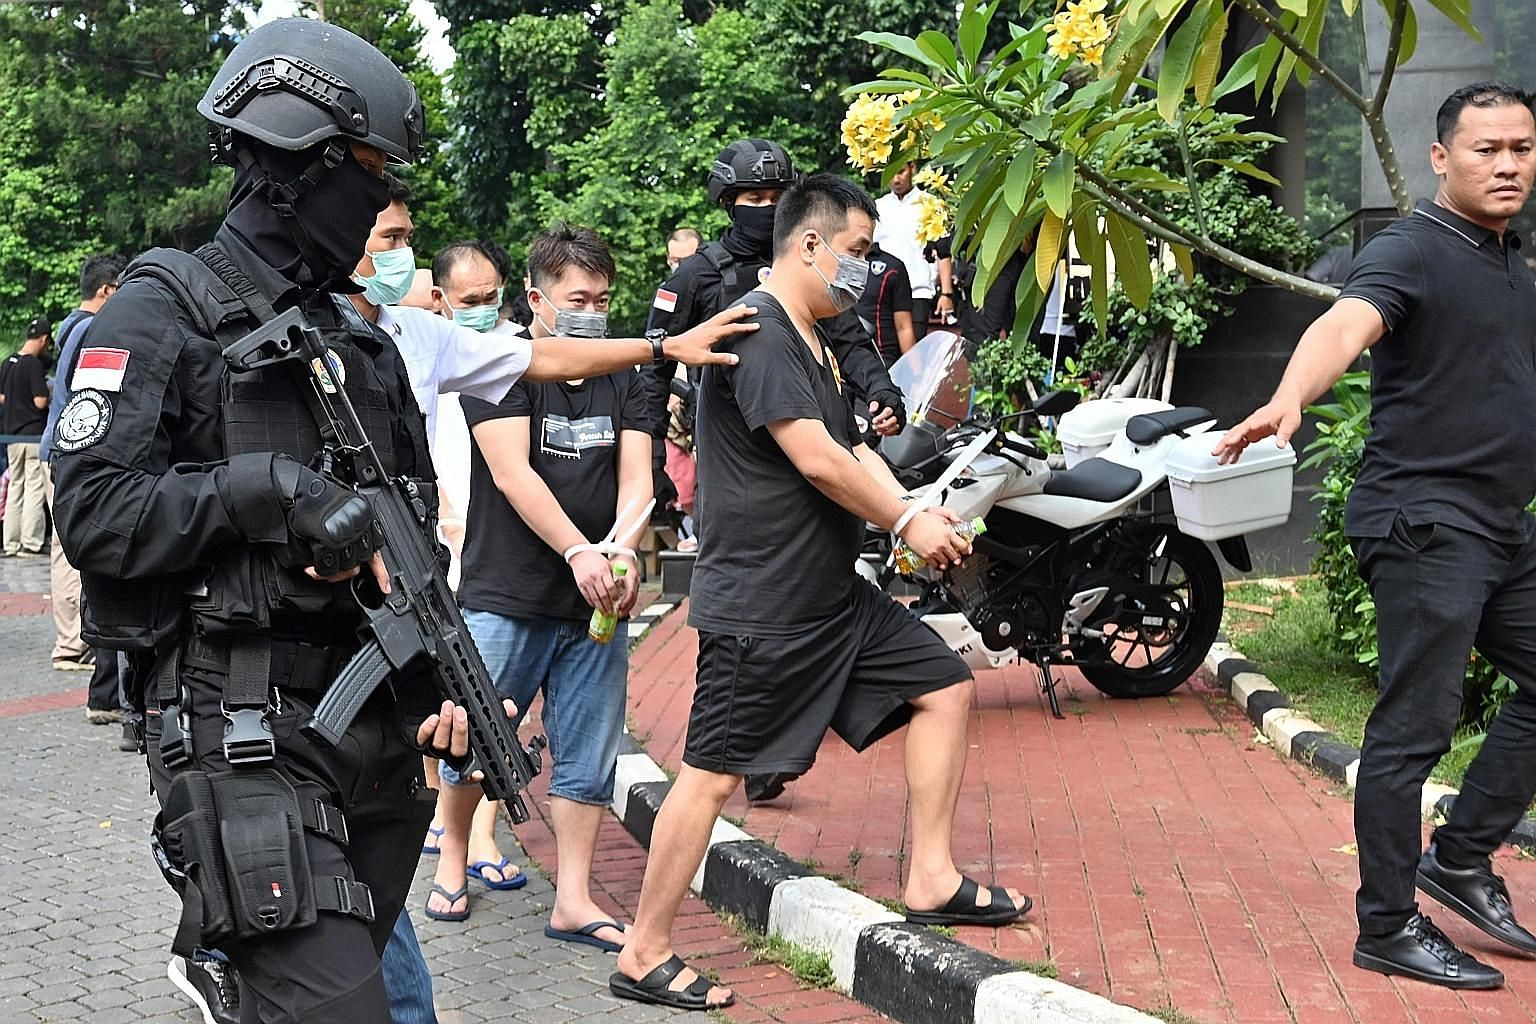 Indonesian police escorting a group of Chinese and Indonesian suspects in Jakarta yesterday. Dozens of Chinese nationals and six Indonesians were arrested over an online scam that bilked victims out of millions of dollars after the Indonesian police